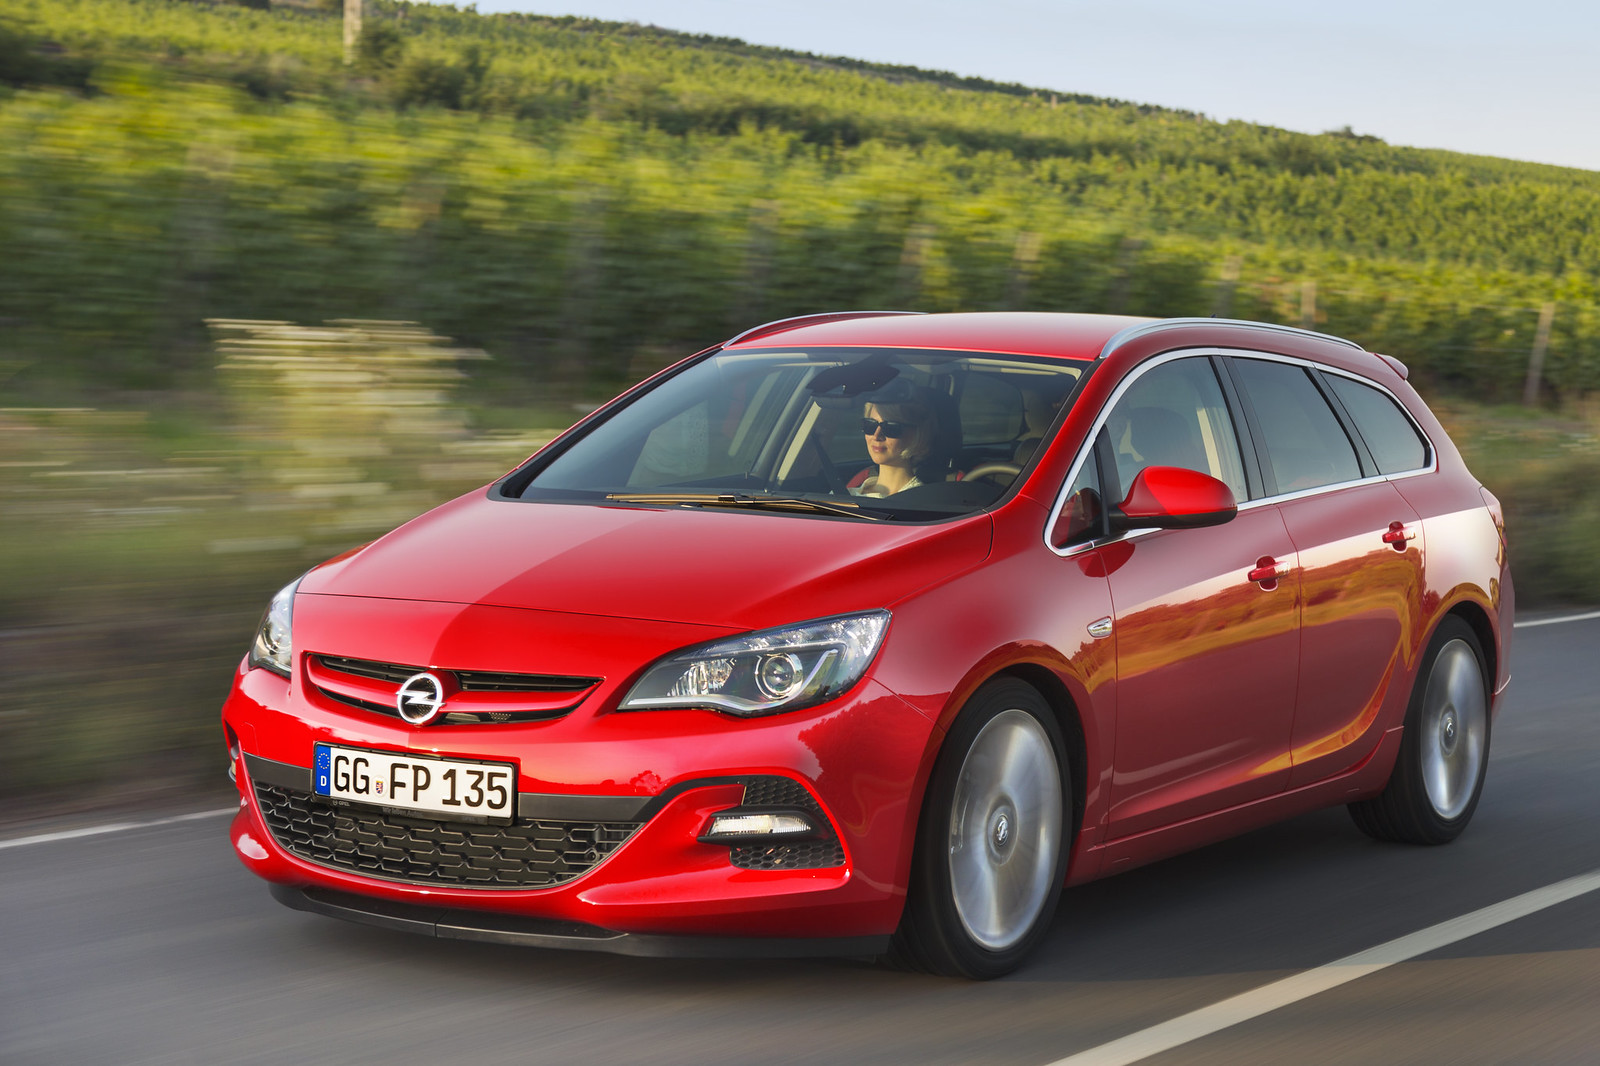 opel astra sports tourer best compact ever in 100 000 kilometer endurance test page 2. Black Bedroom Furniture Sets. Home Design Ideas